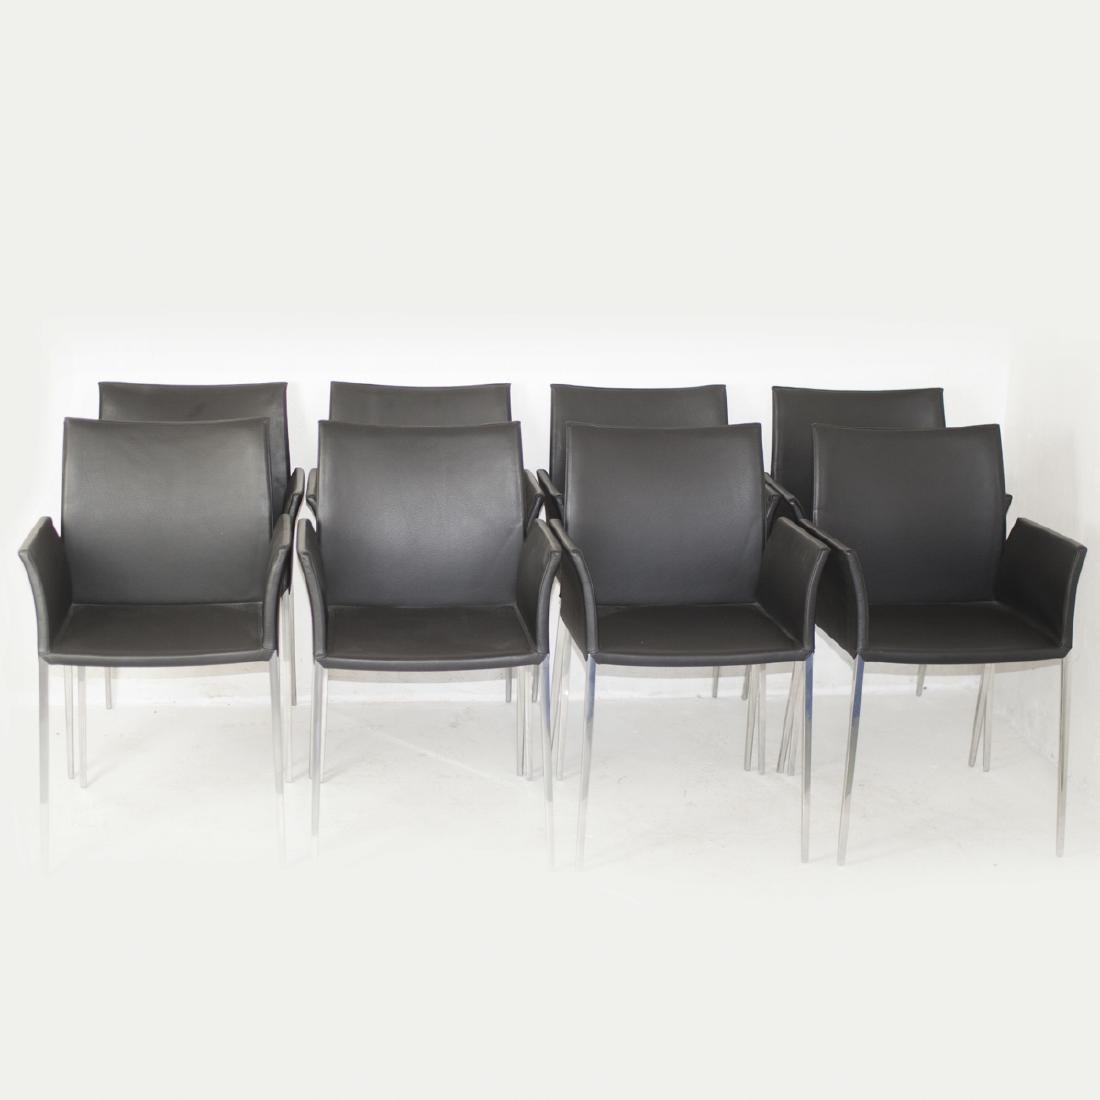 Contemporary Zanotta Leather Dining Chairs